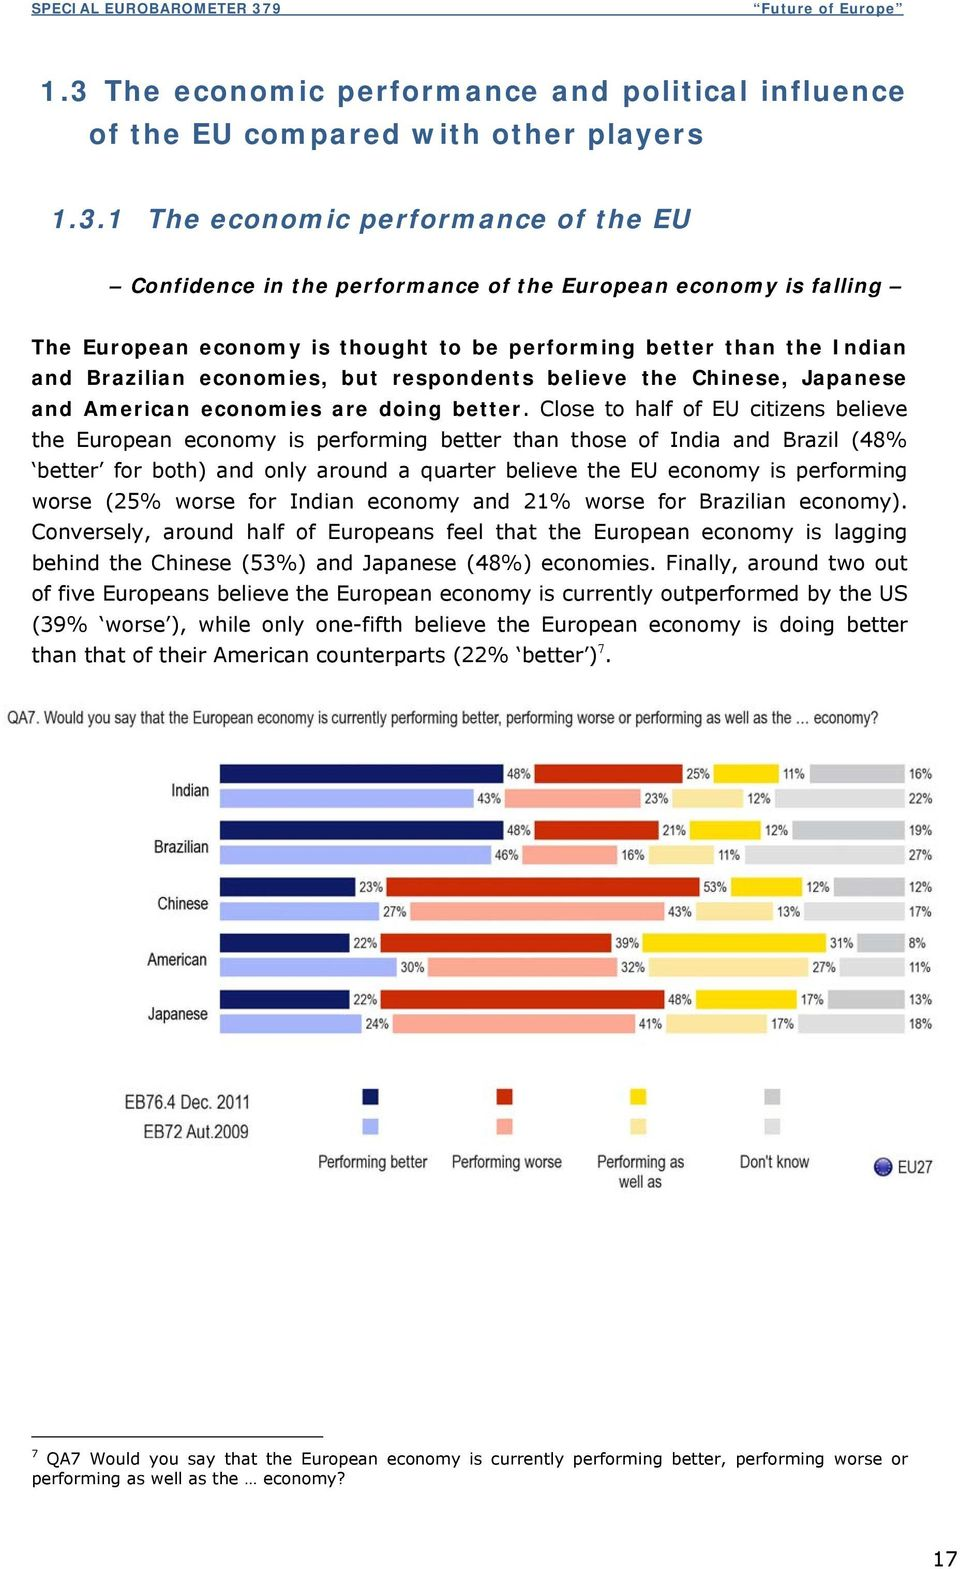 Close to half of EU citizens believe the European economy is performing better than those of India and Brazil (48% better for both) and only around a quarter believe the EU economy is performing